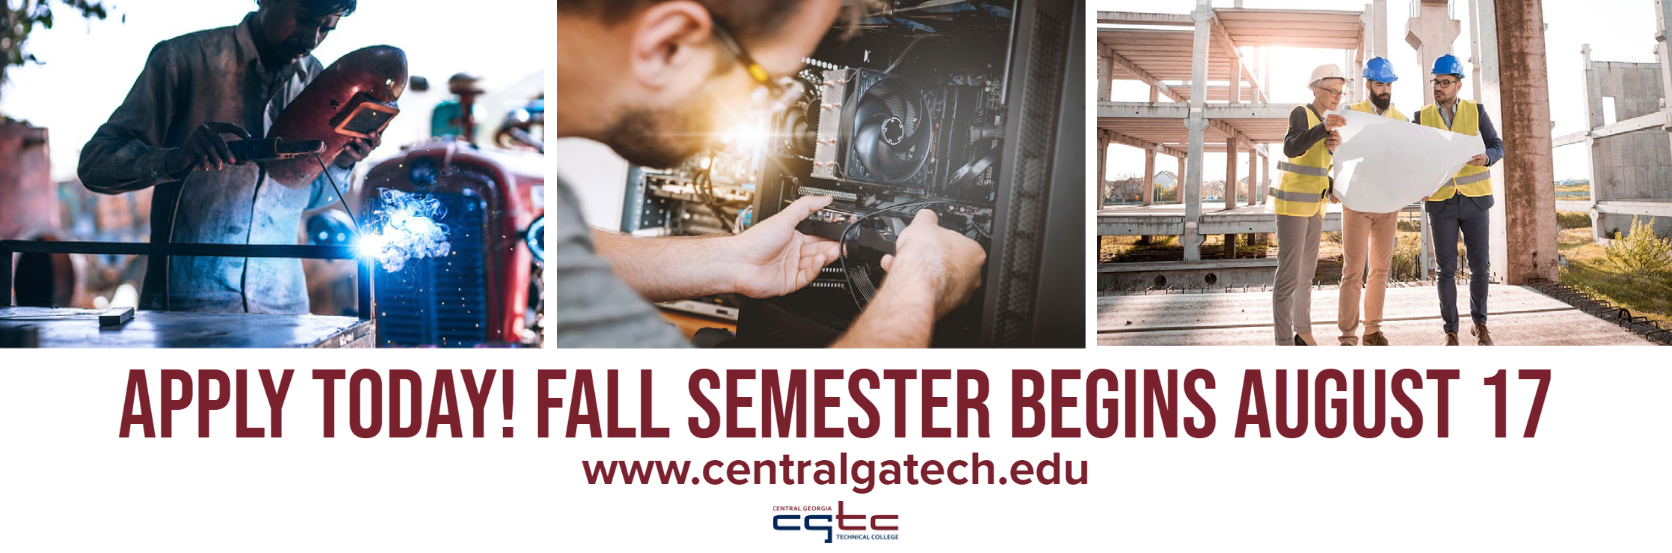 Apply to CGTC today. Fall semester begins August 17.